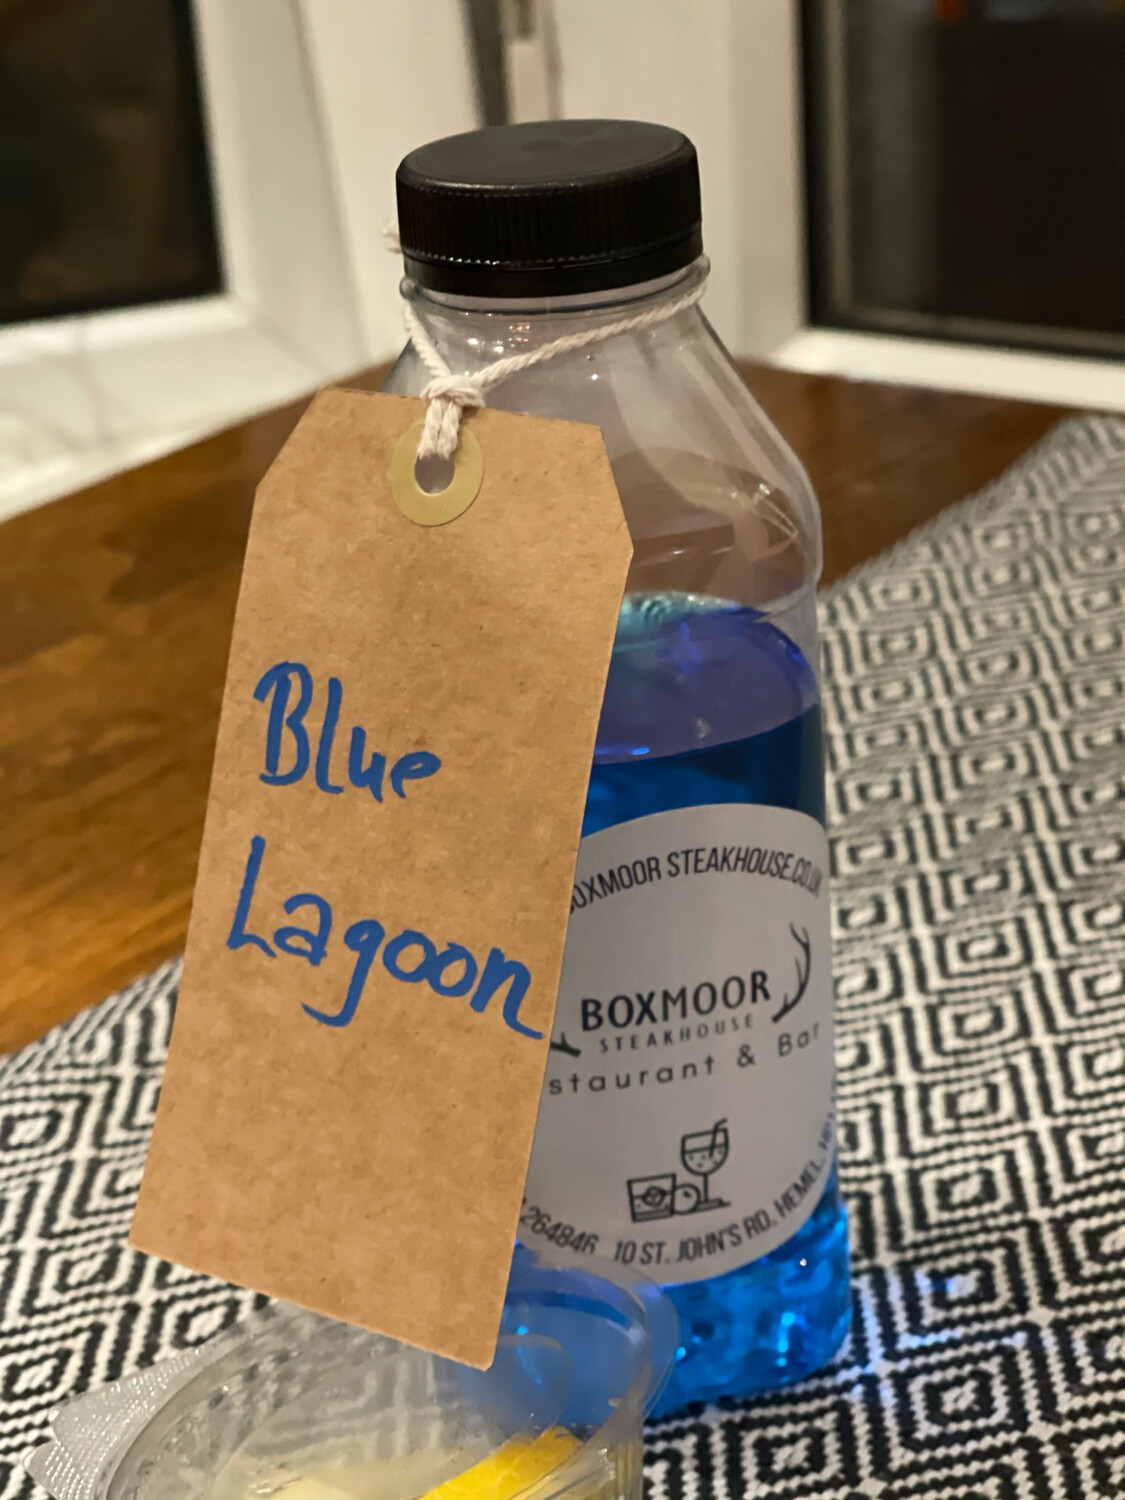 Blue lagoon To Share